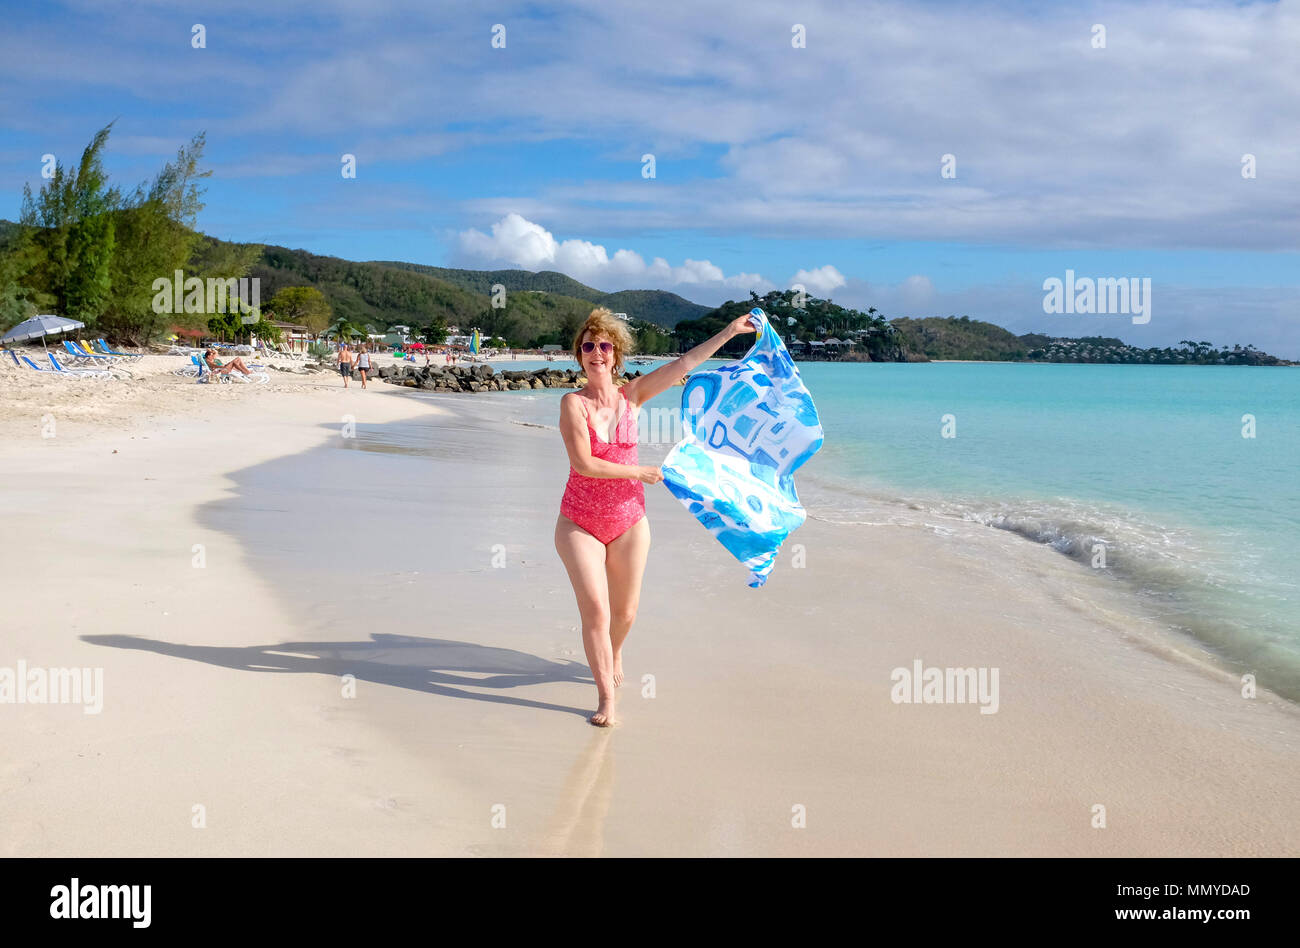 Antigua Lesser Antilles islands Caribbean West Indies - Beautiful Jolly Harbour sandy beach with woman running with a Beach Clean Designs  sarong - Stock Image